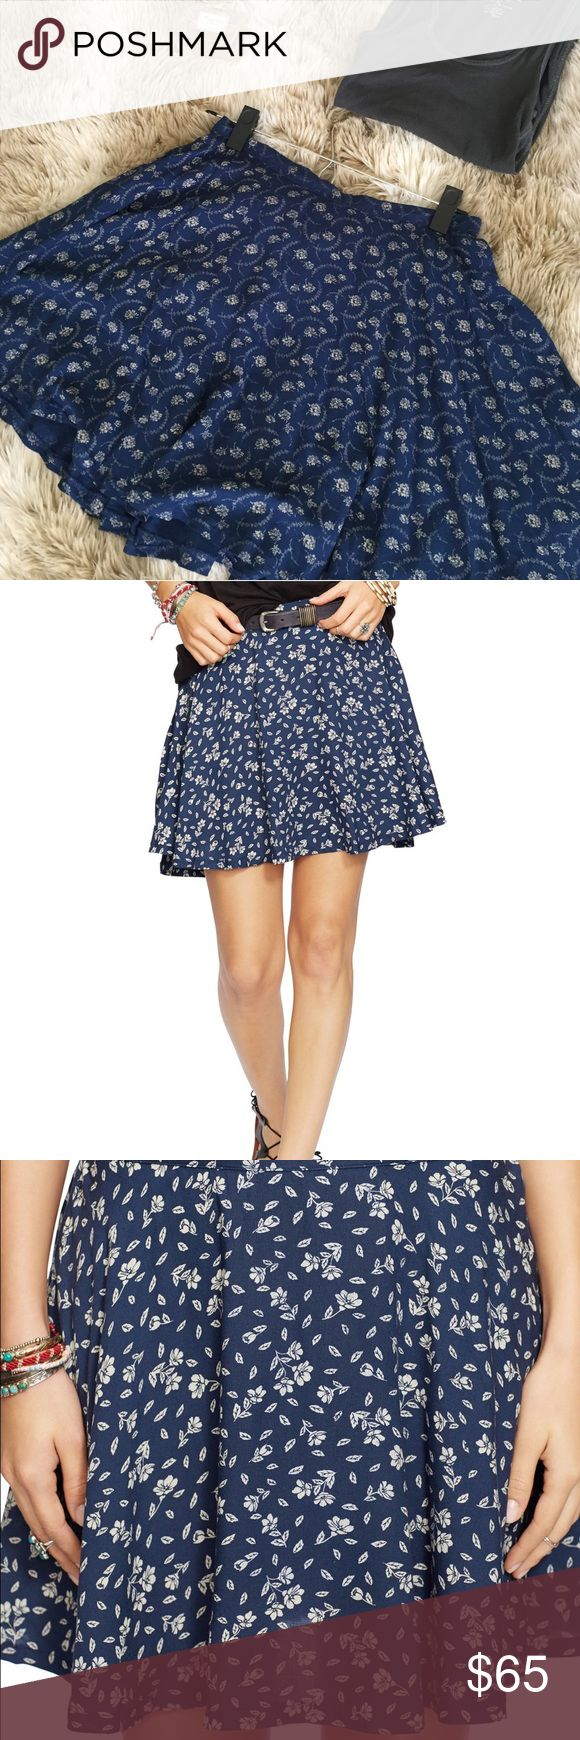 Denim & Supply Ralph Lauren Floral Print Skirt Brand new without tag, Demin & Supply Floral Print A-Line Skirt, Demin & Supply is a Ralph Lauren line. Very Gorgeous skirt and it has never been worn other than to try it on. Denim & Supply Ralph Lauren Skirts Mini